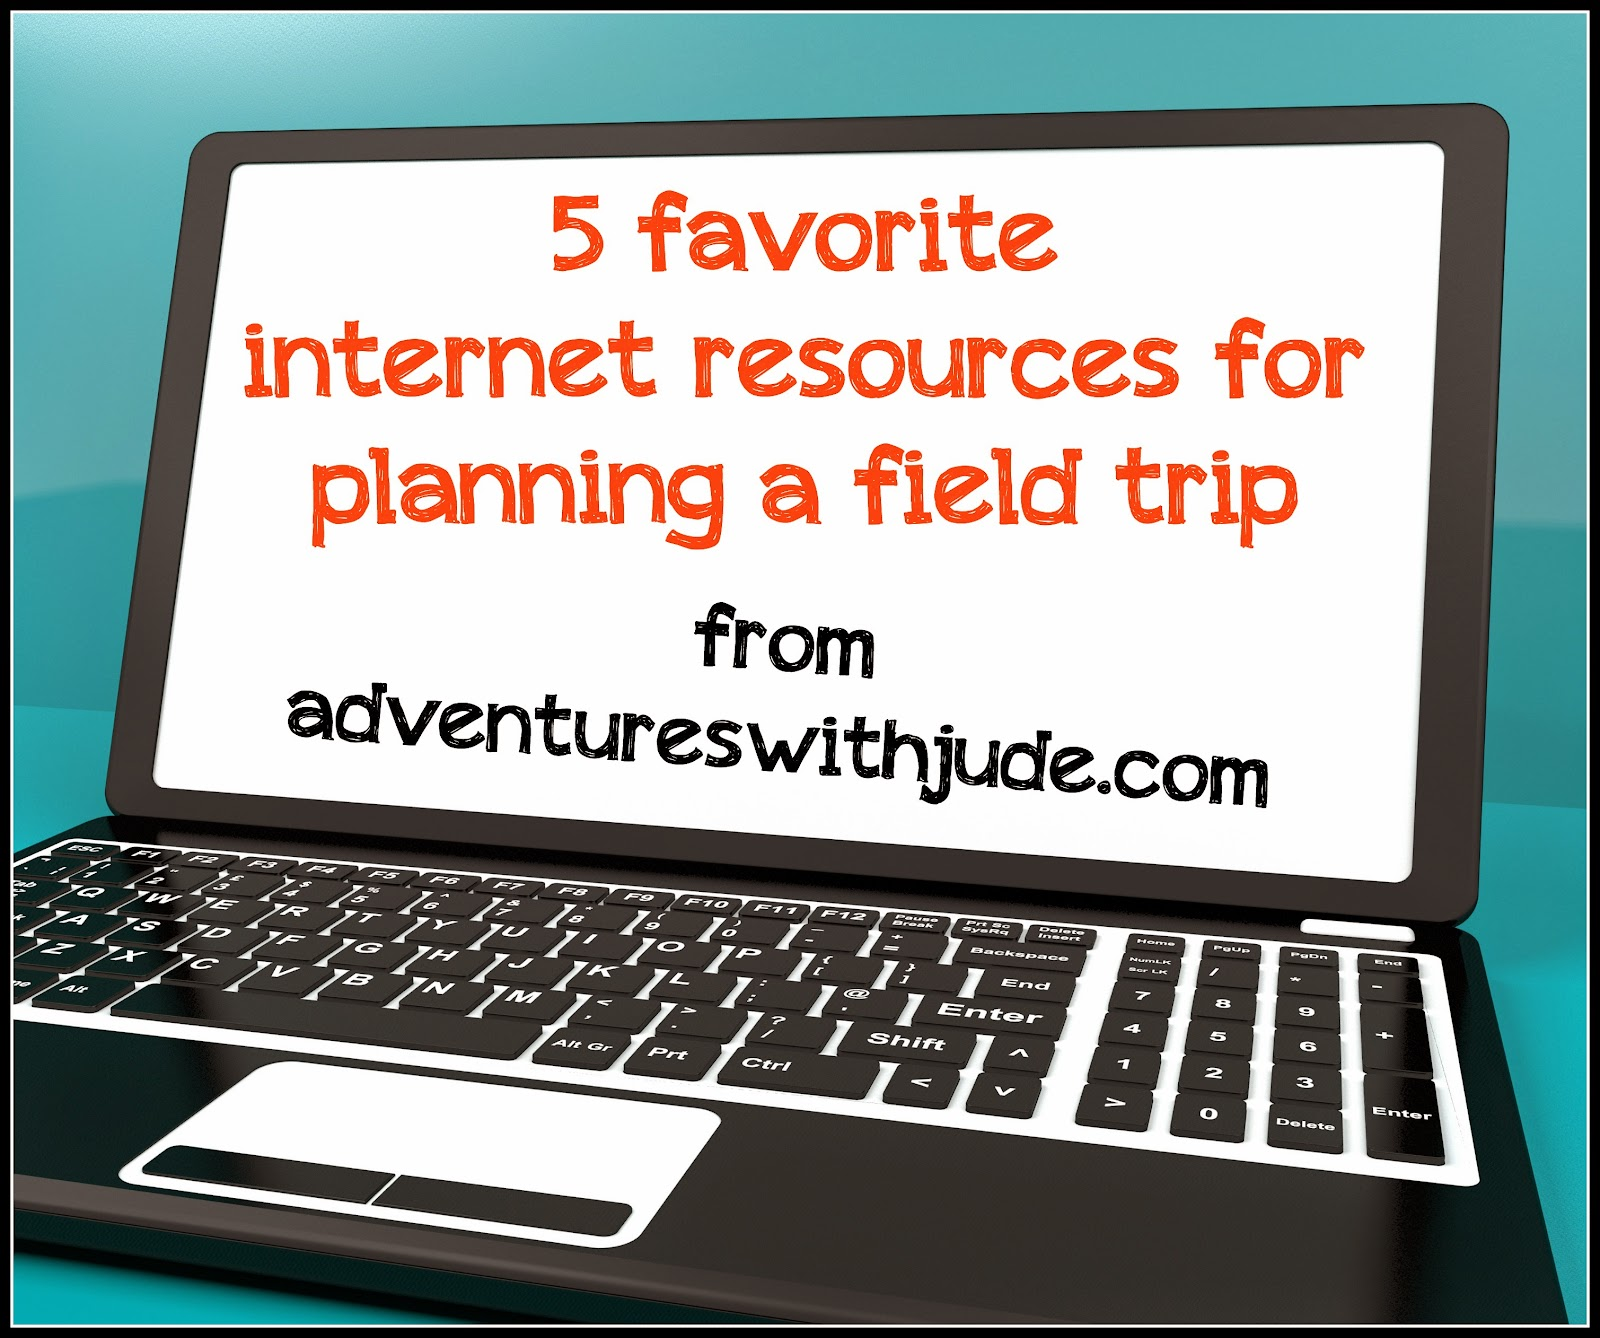 5 favorite internet resources for planning a field trip